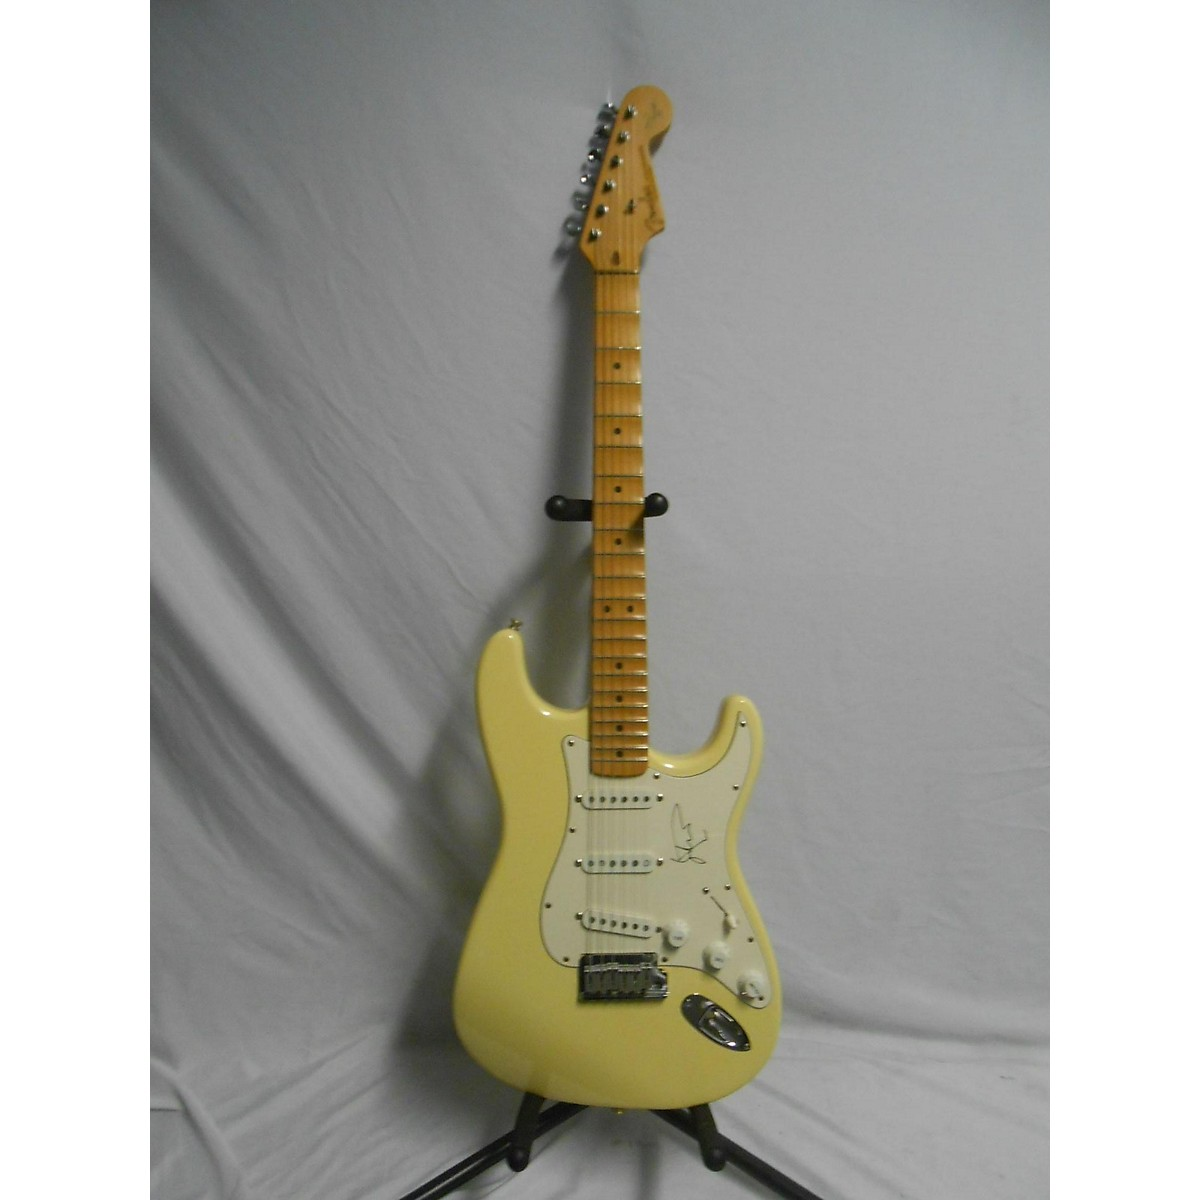 Fender 1989 Early Fender Malmsteen Strat White MN Autographed Solid Body Electric Guitar